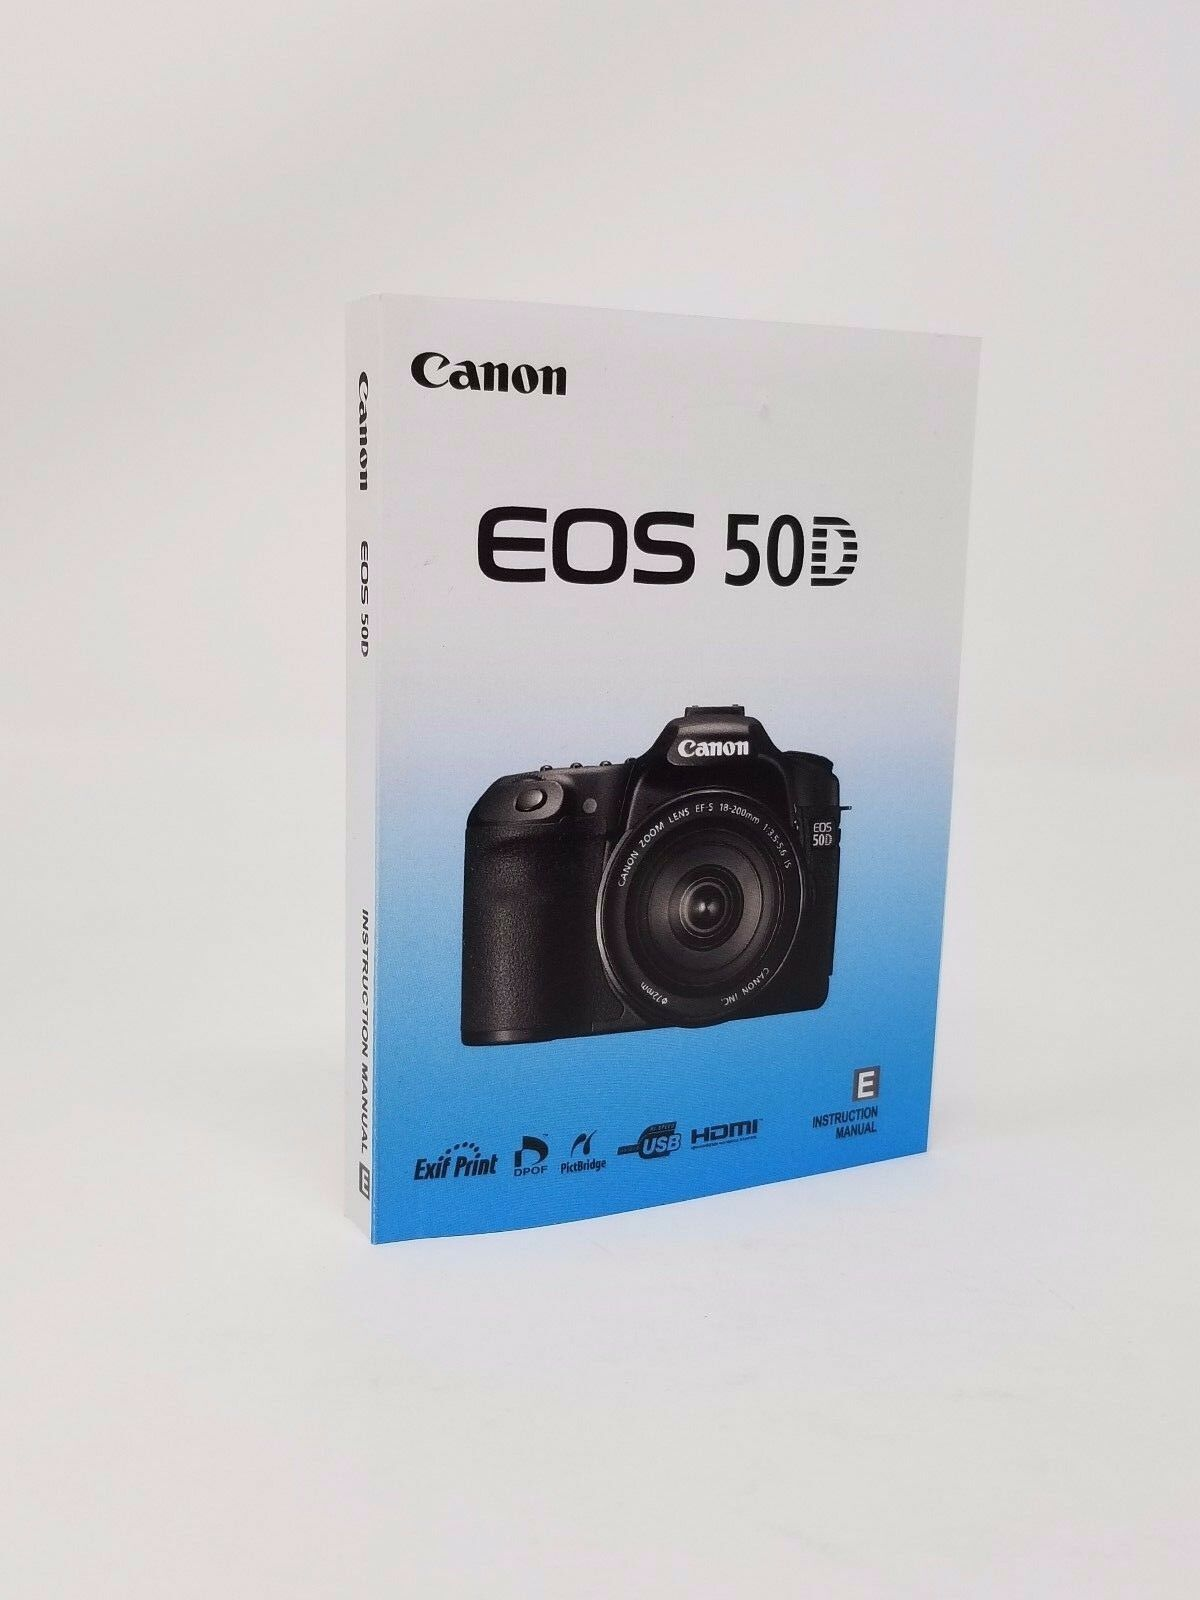 canon eos 50d genuine instruction owners manual book original new rh picclick com canon eos 550d instruction manual canon eos 550d instruction manual